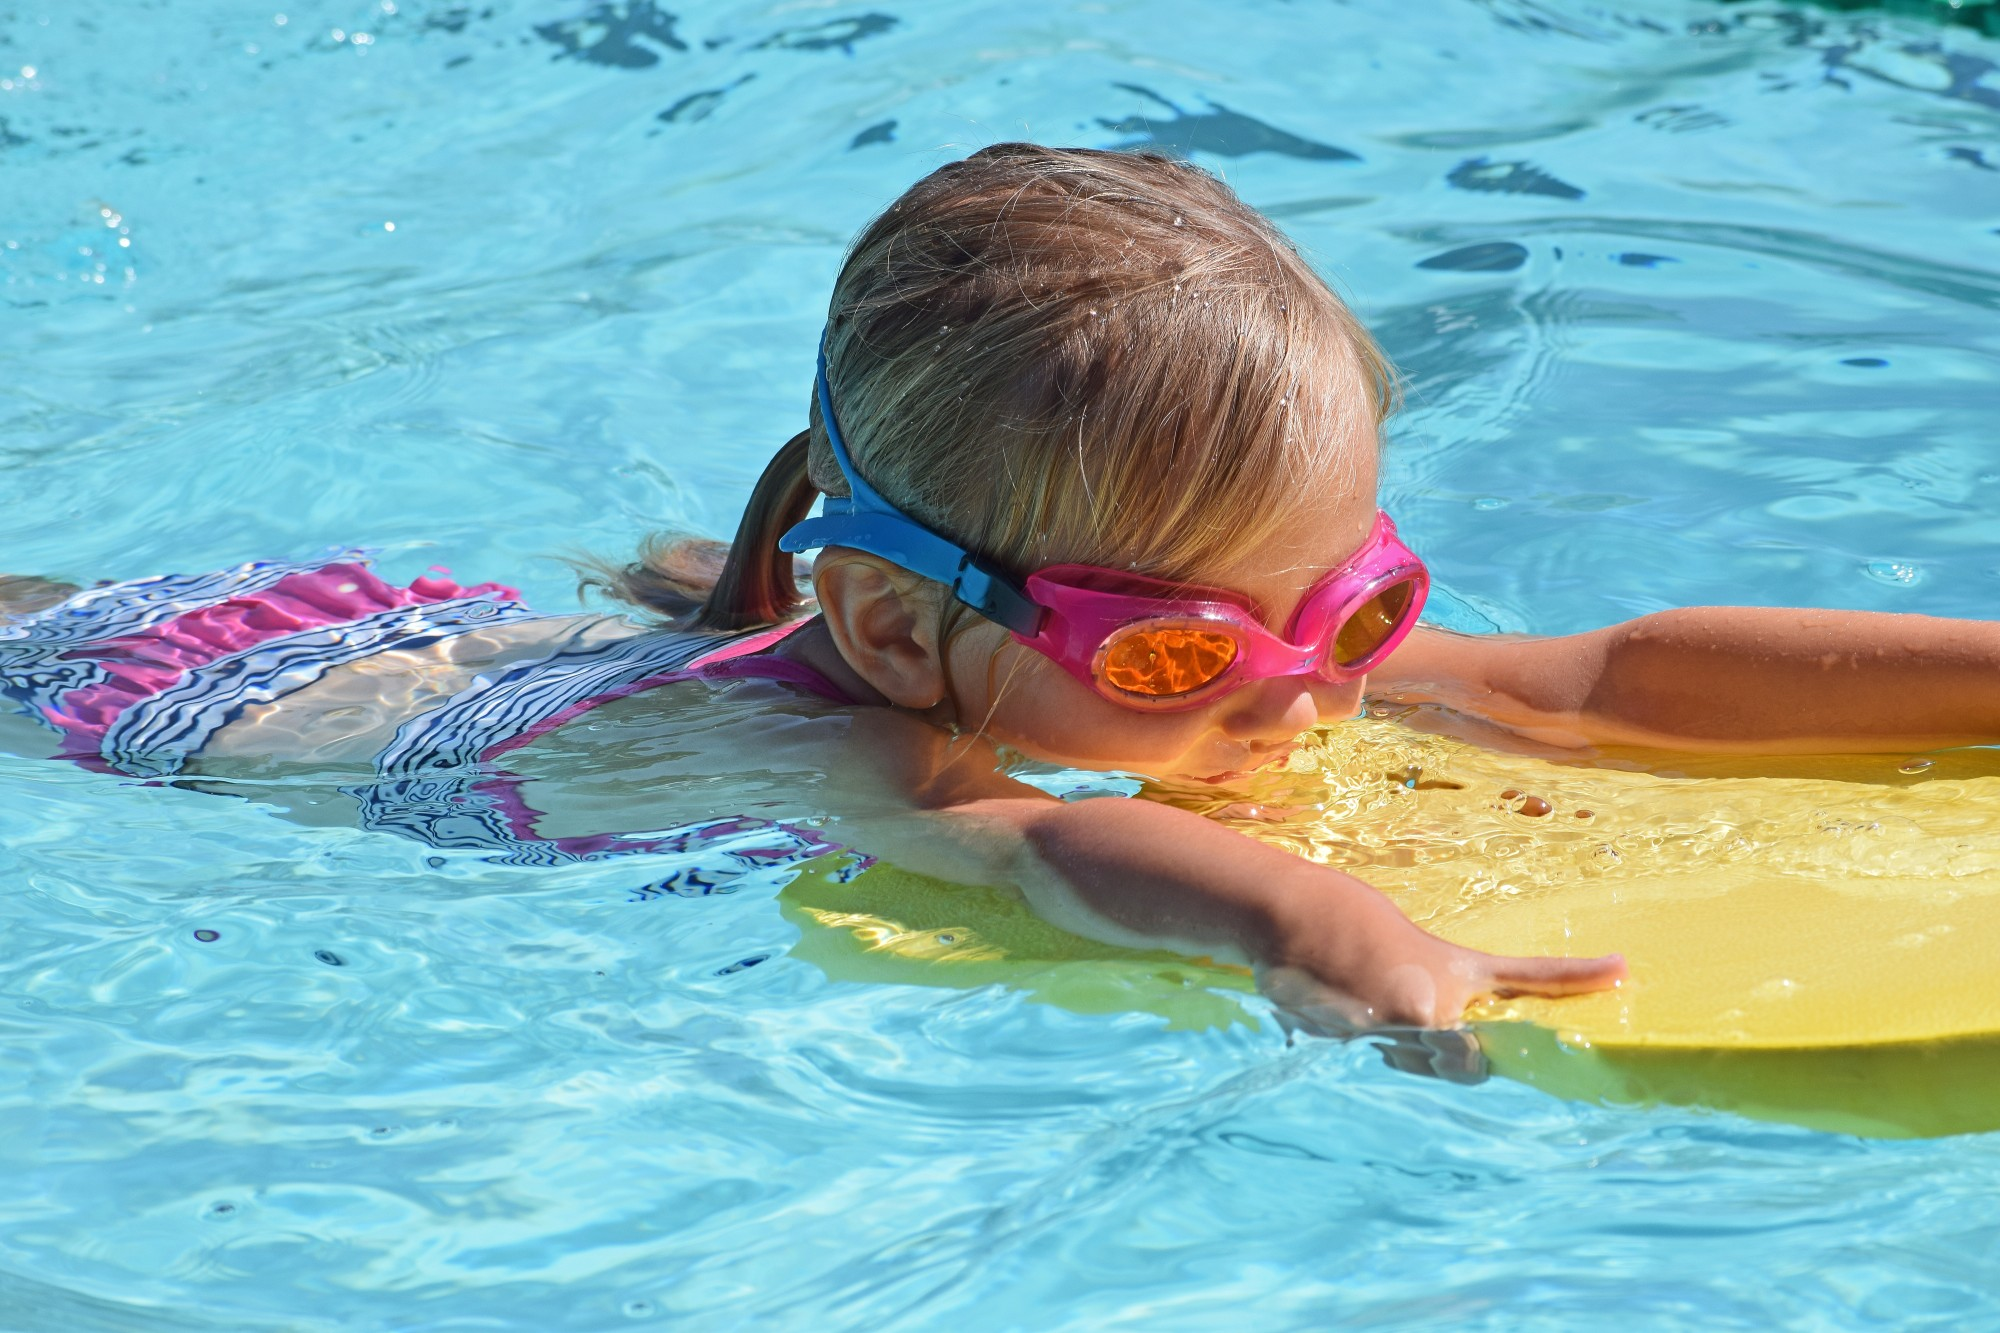 10 Kid's Summer Activities to Keep Kids Entertained